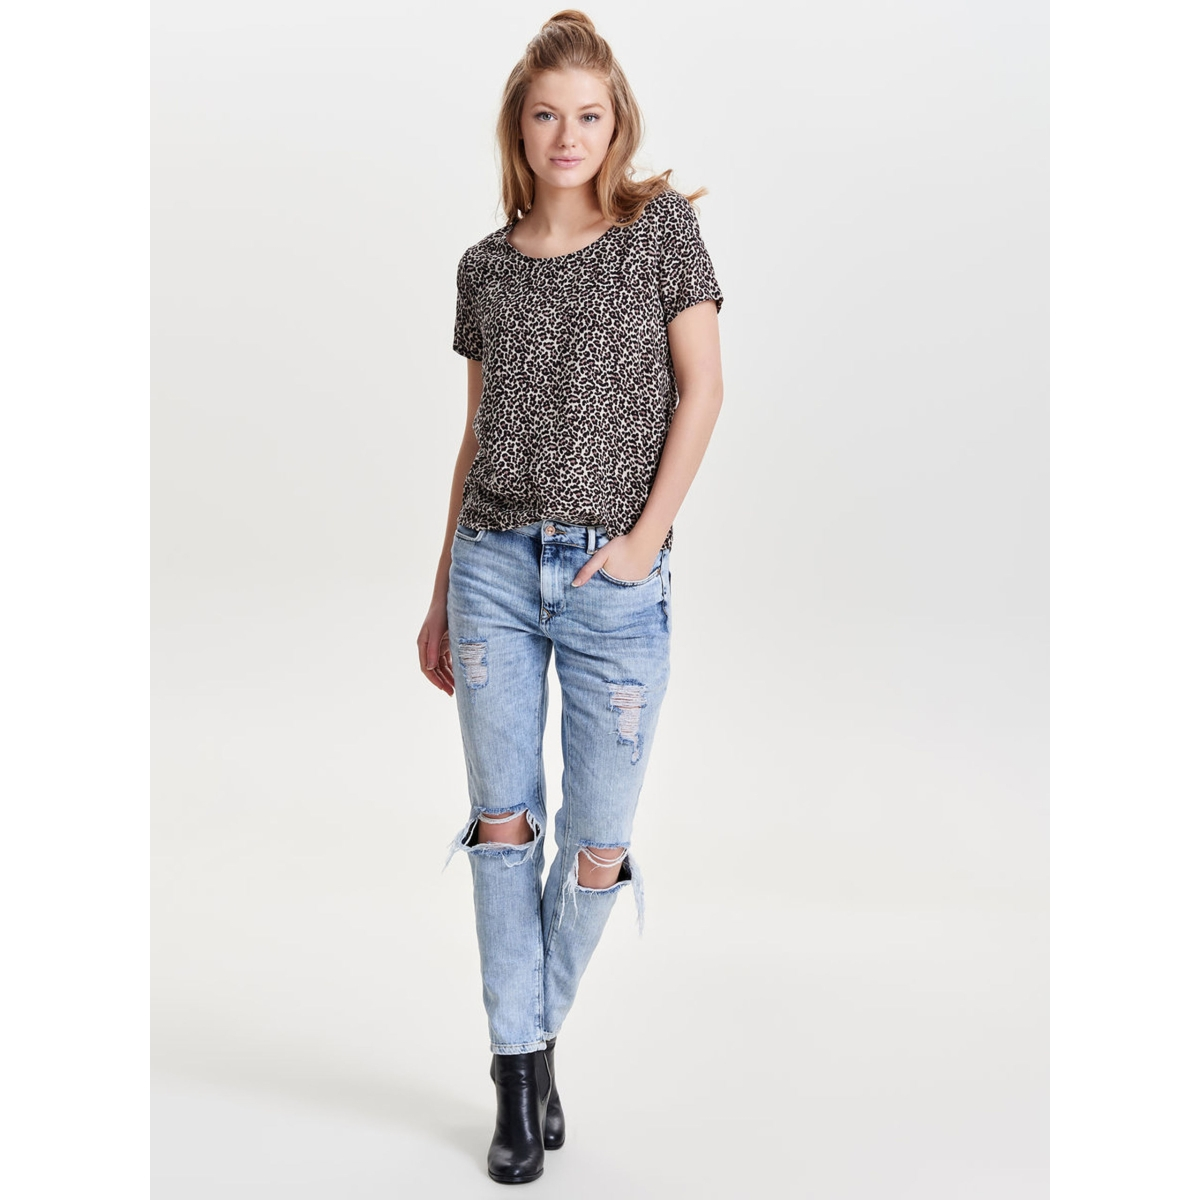 onlfirst ss mix aop top  noos wvn 15138761 only t-shirt desert taupe/ mini